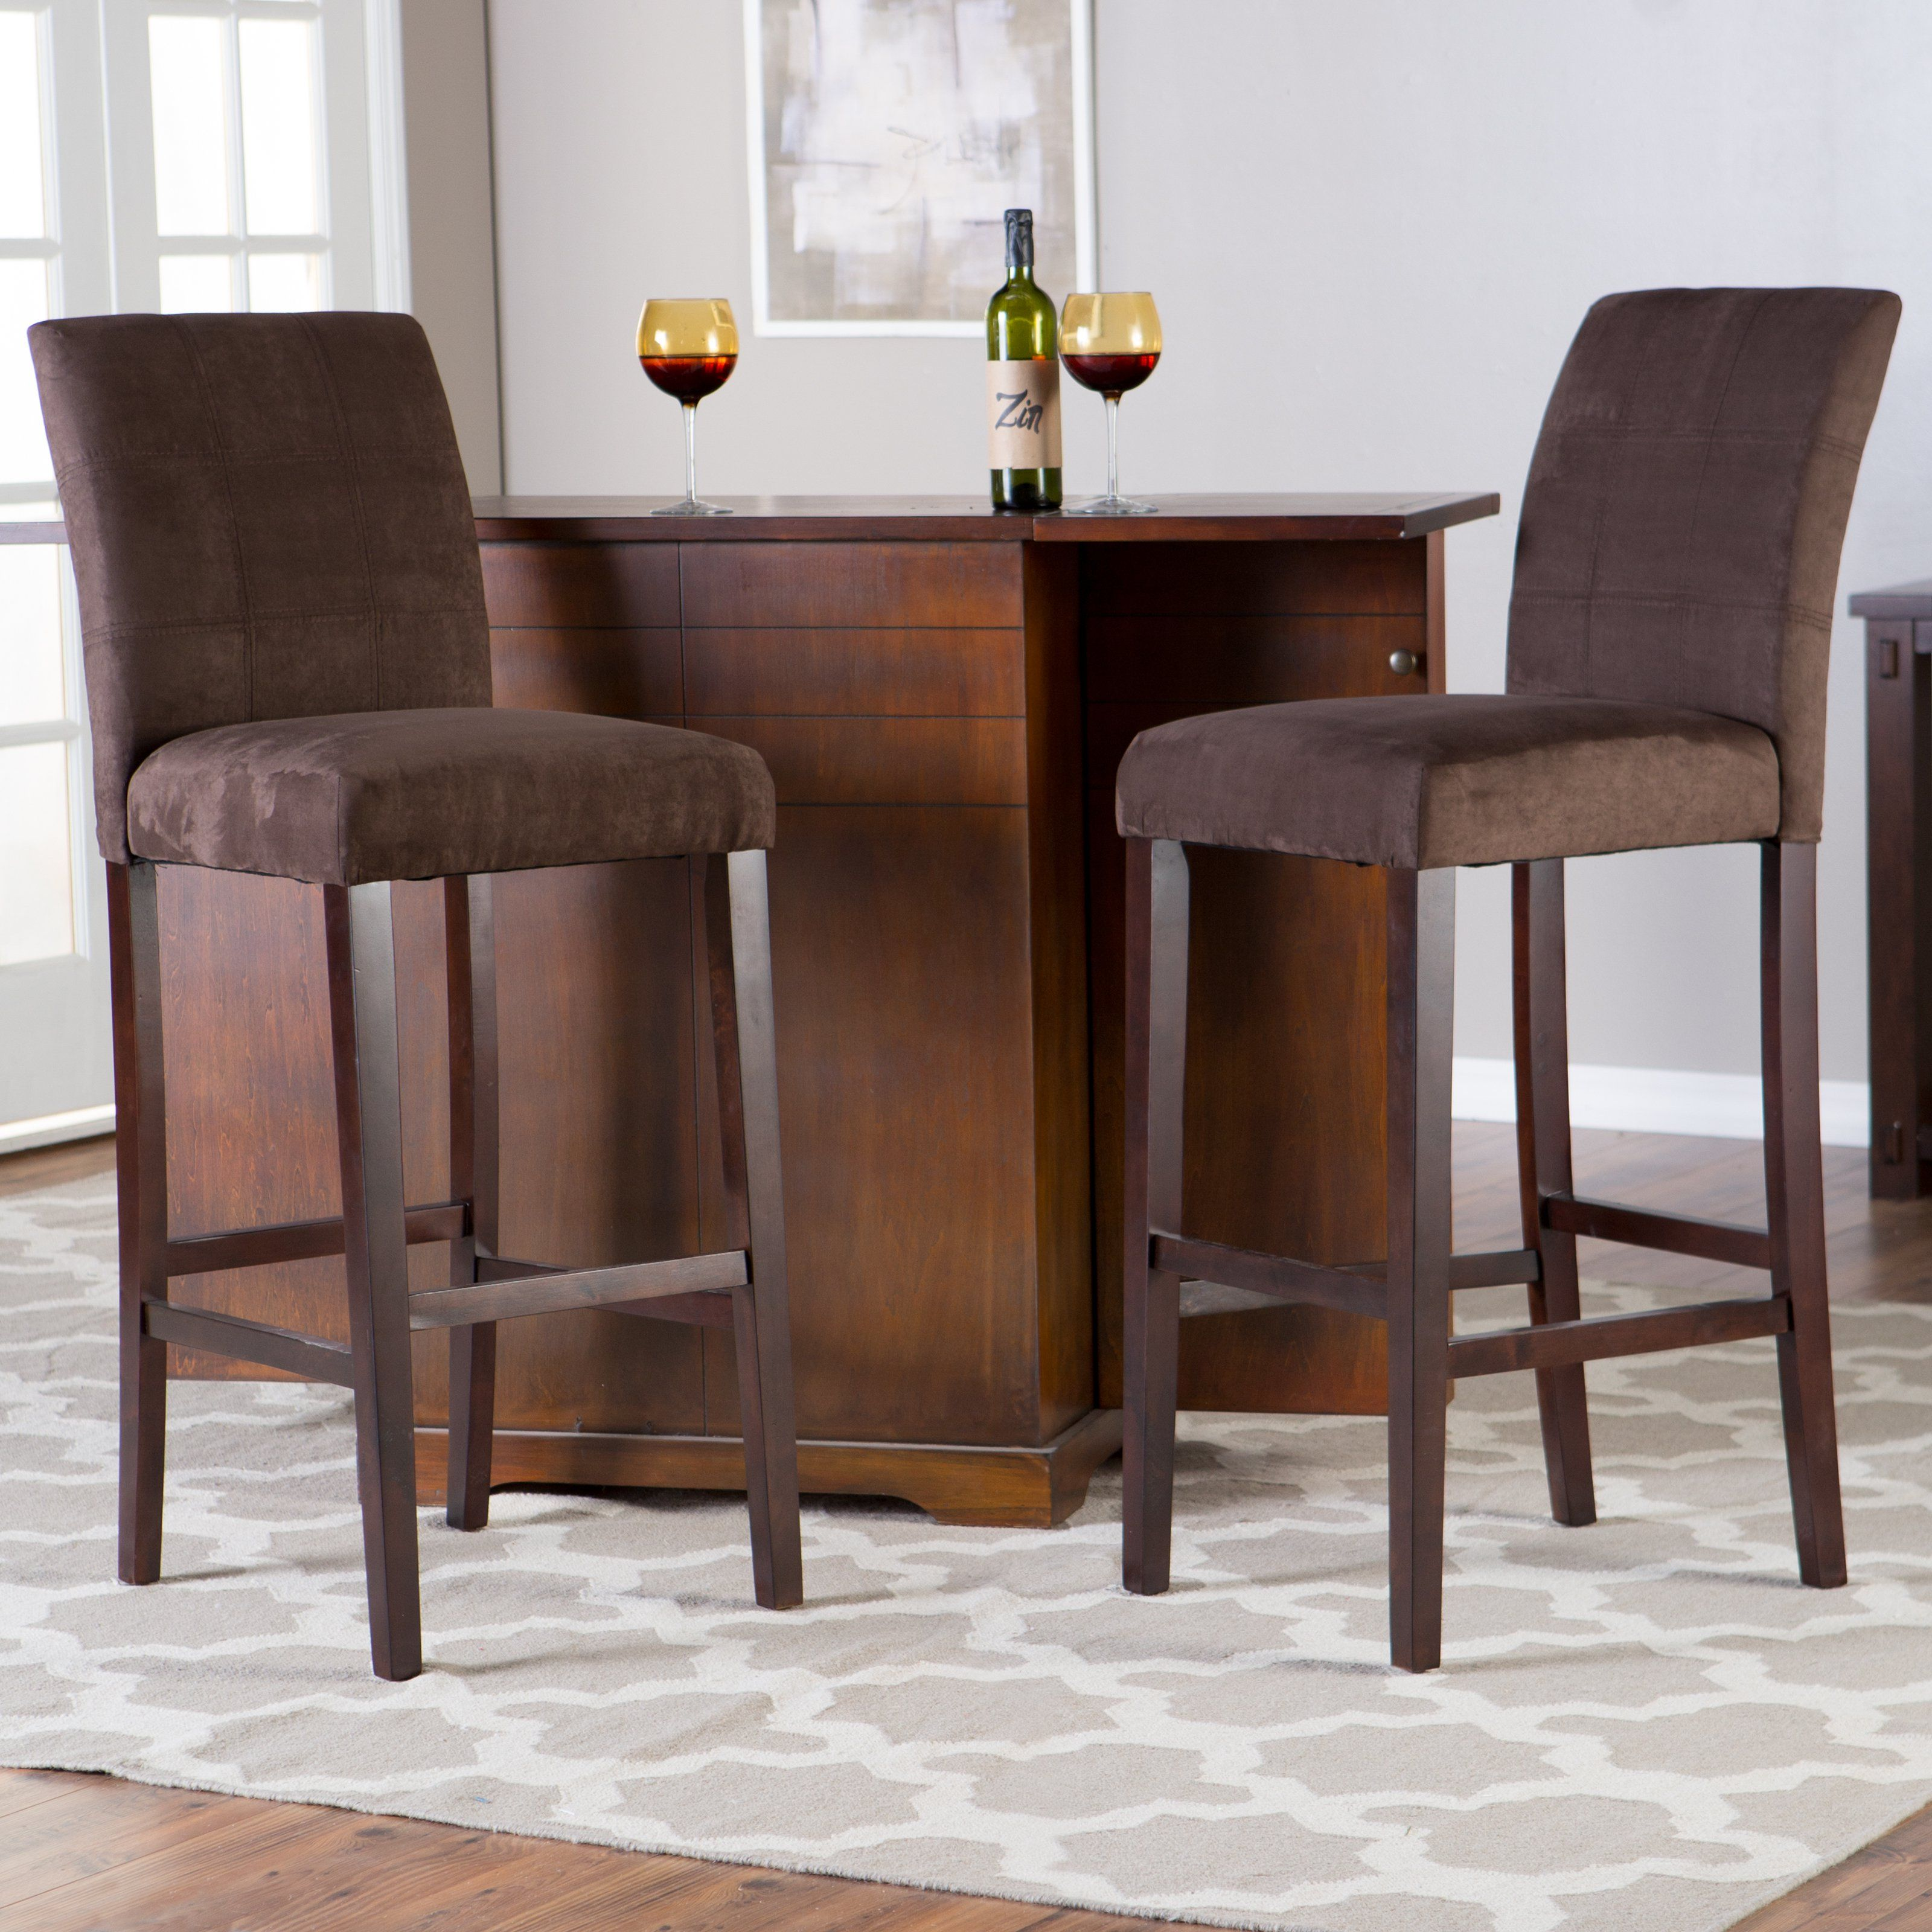 Palazzo Extra Tall Barstool - Chocolate - Set of 2 - Designed to ...